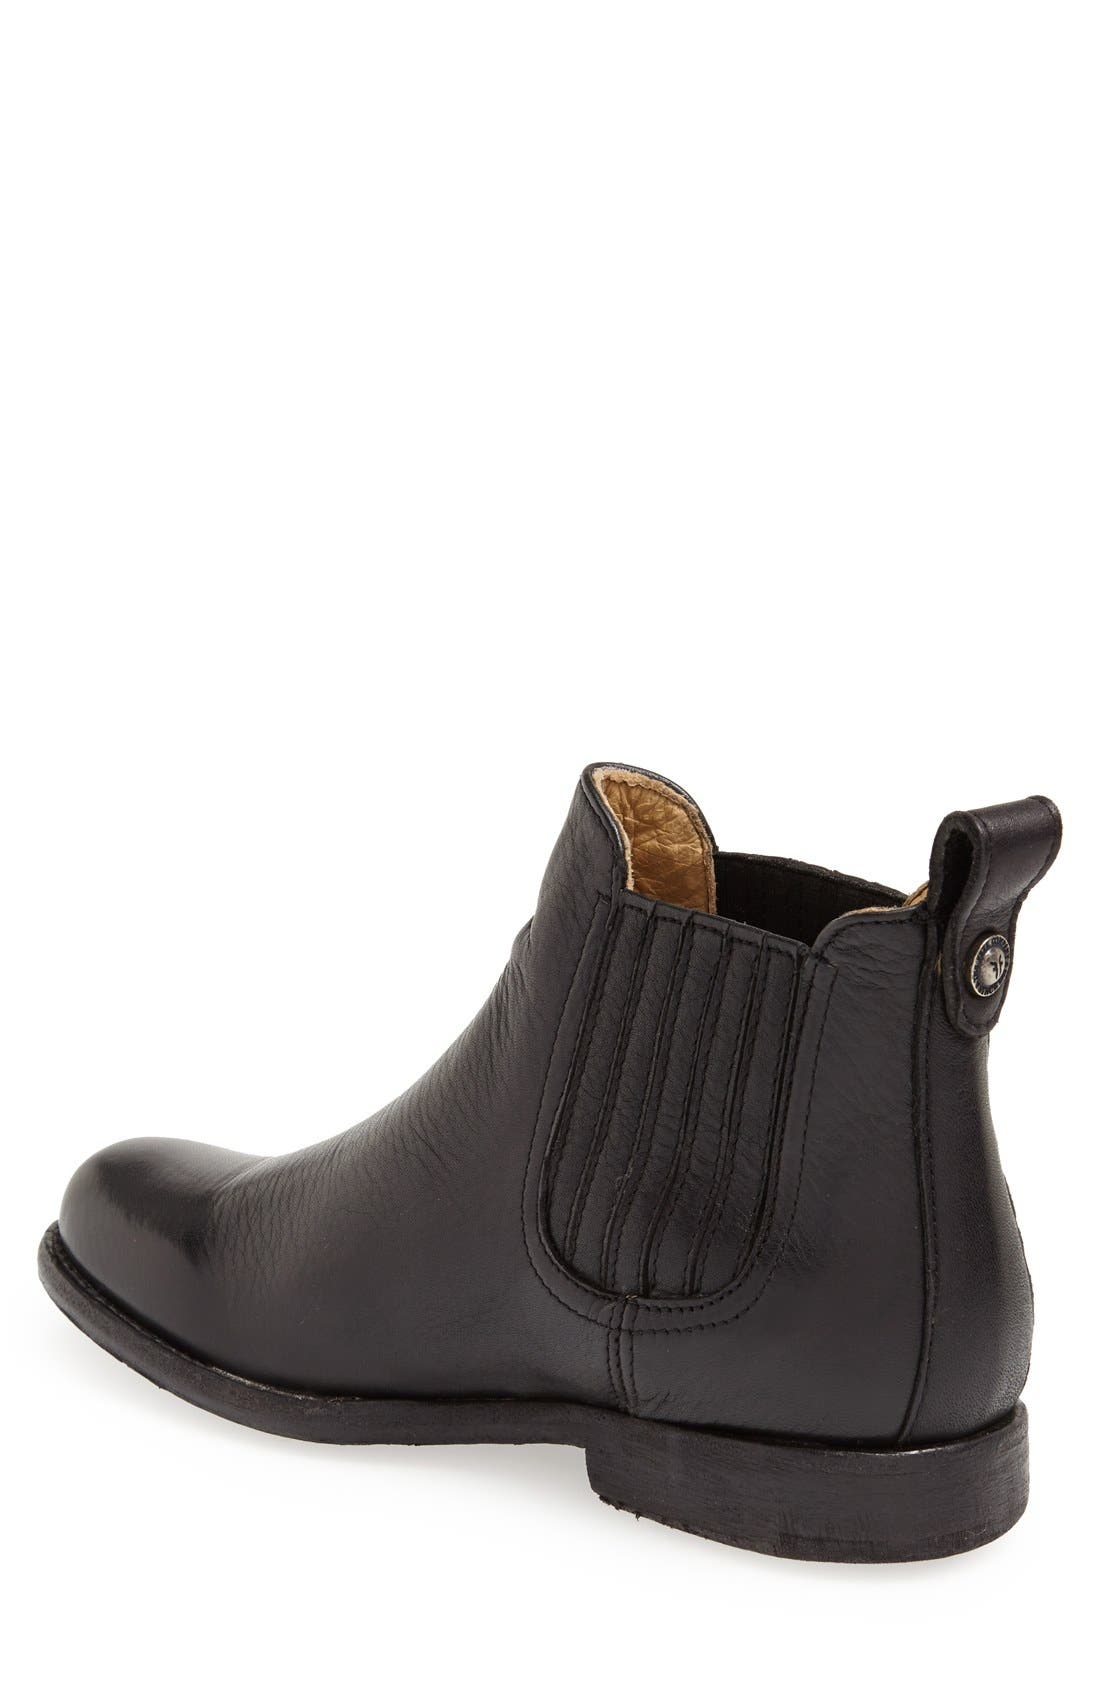 Alternate Image 2  - Frye 'Phillip' Leather Chelsea Boot (Women)